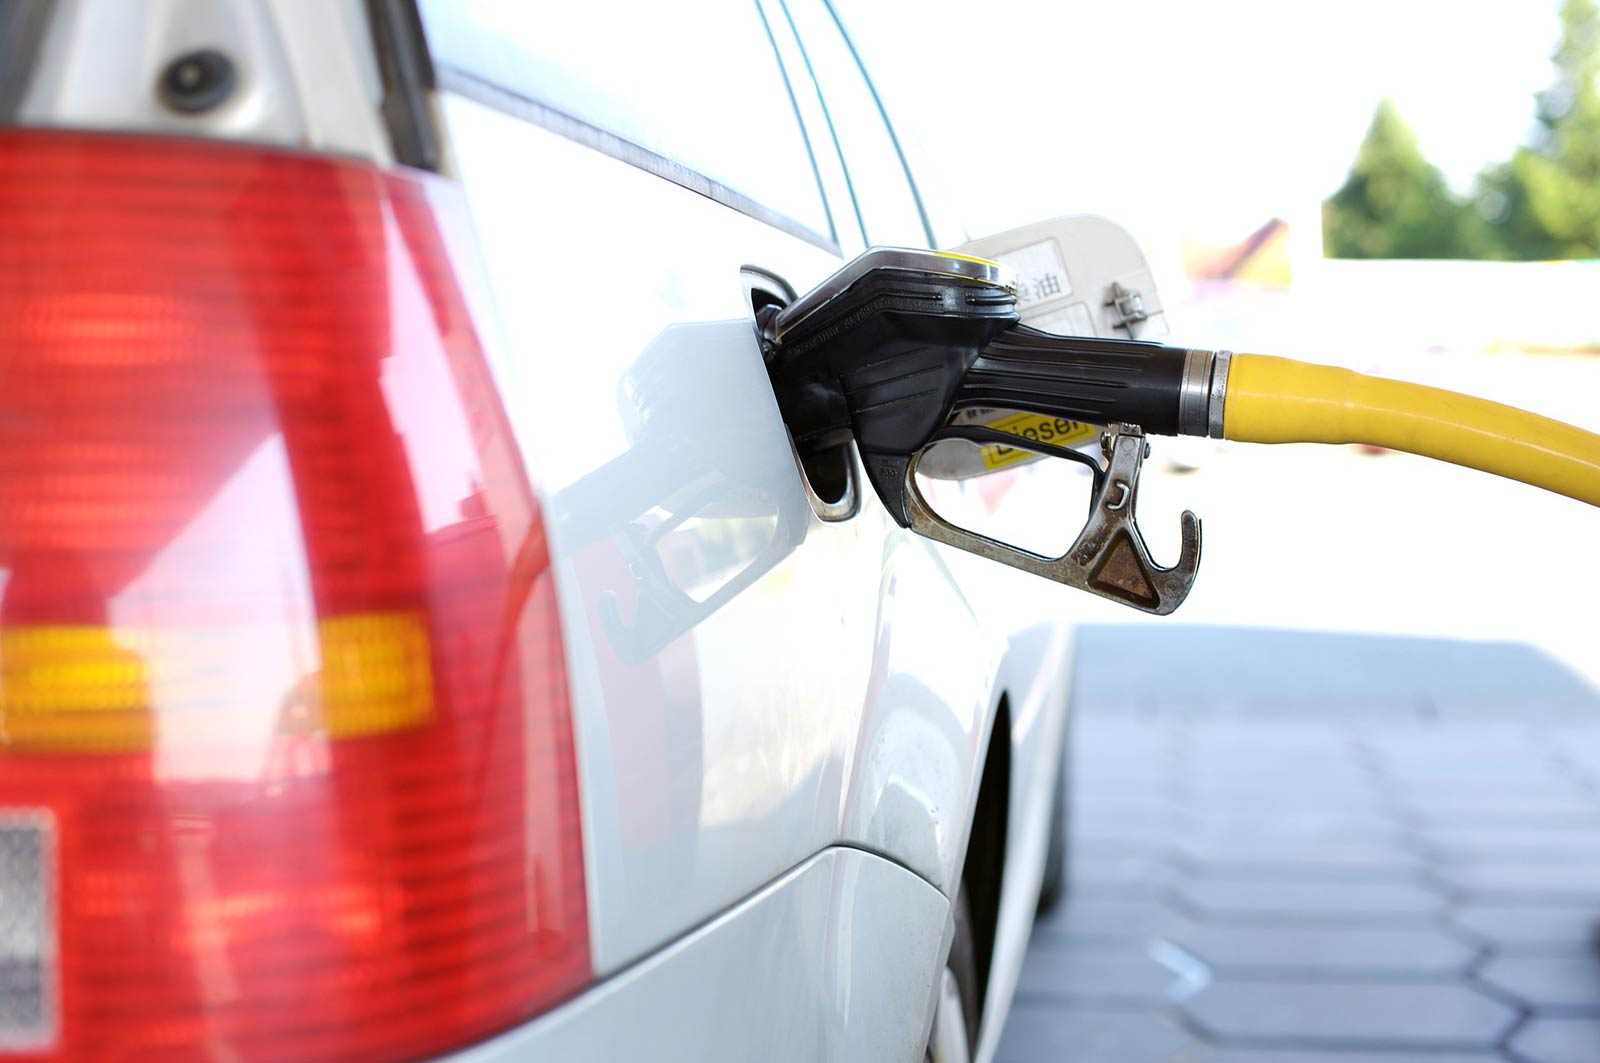 Don't Let Your Business Fall Victim to Fuel Theft